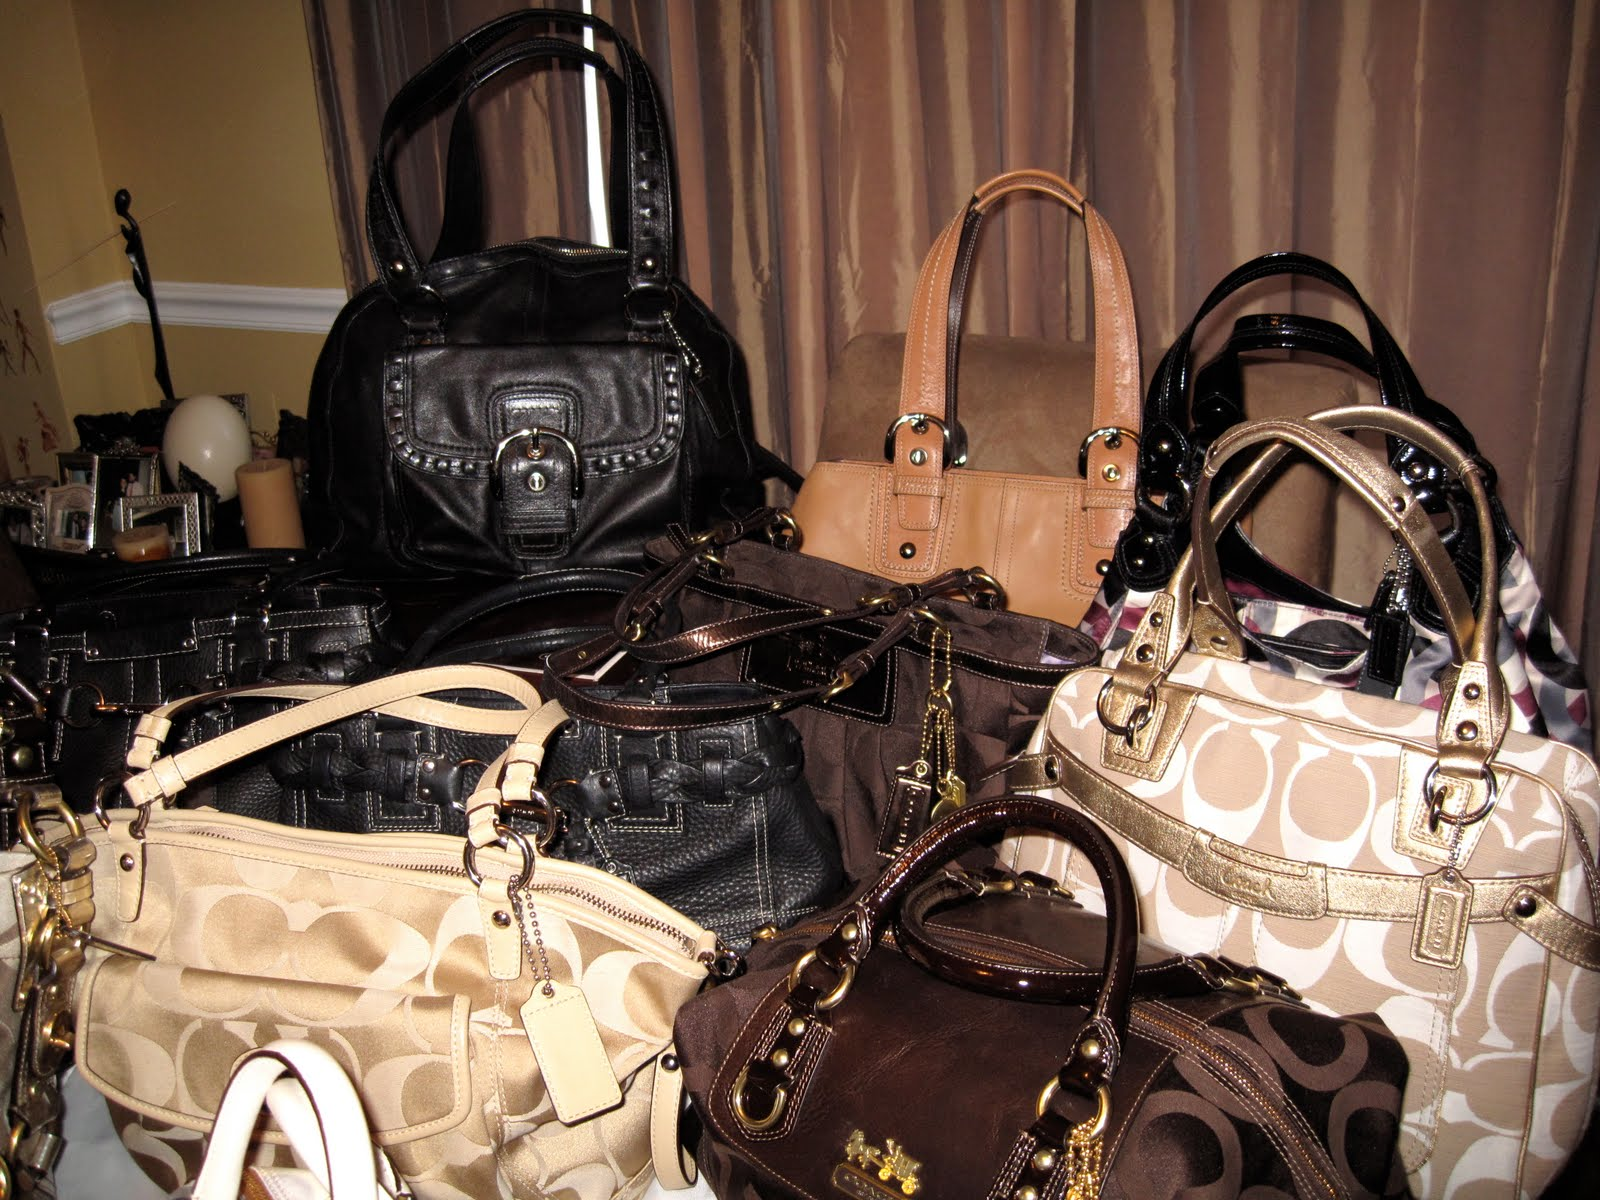 487ddd0ed203 ... cheap my coach purse collection back leather left coach dome satchel  cream white gold right penelope